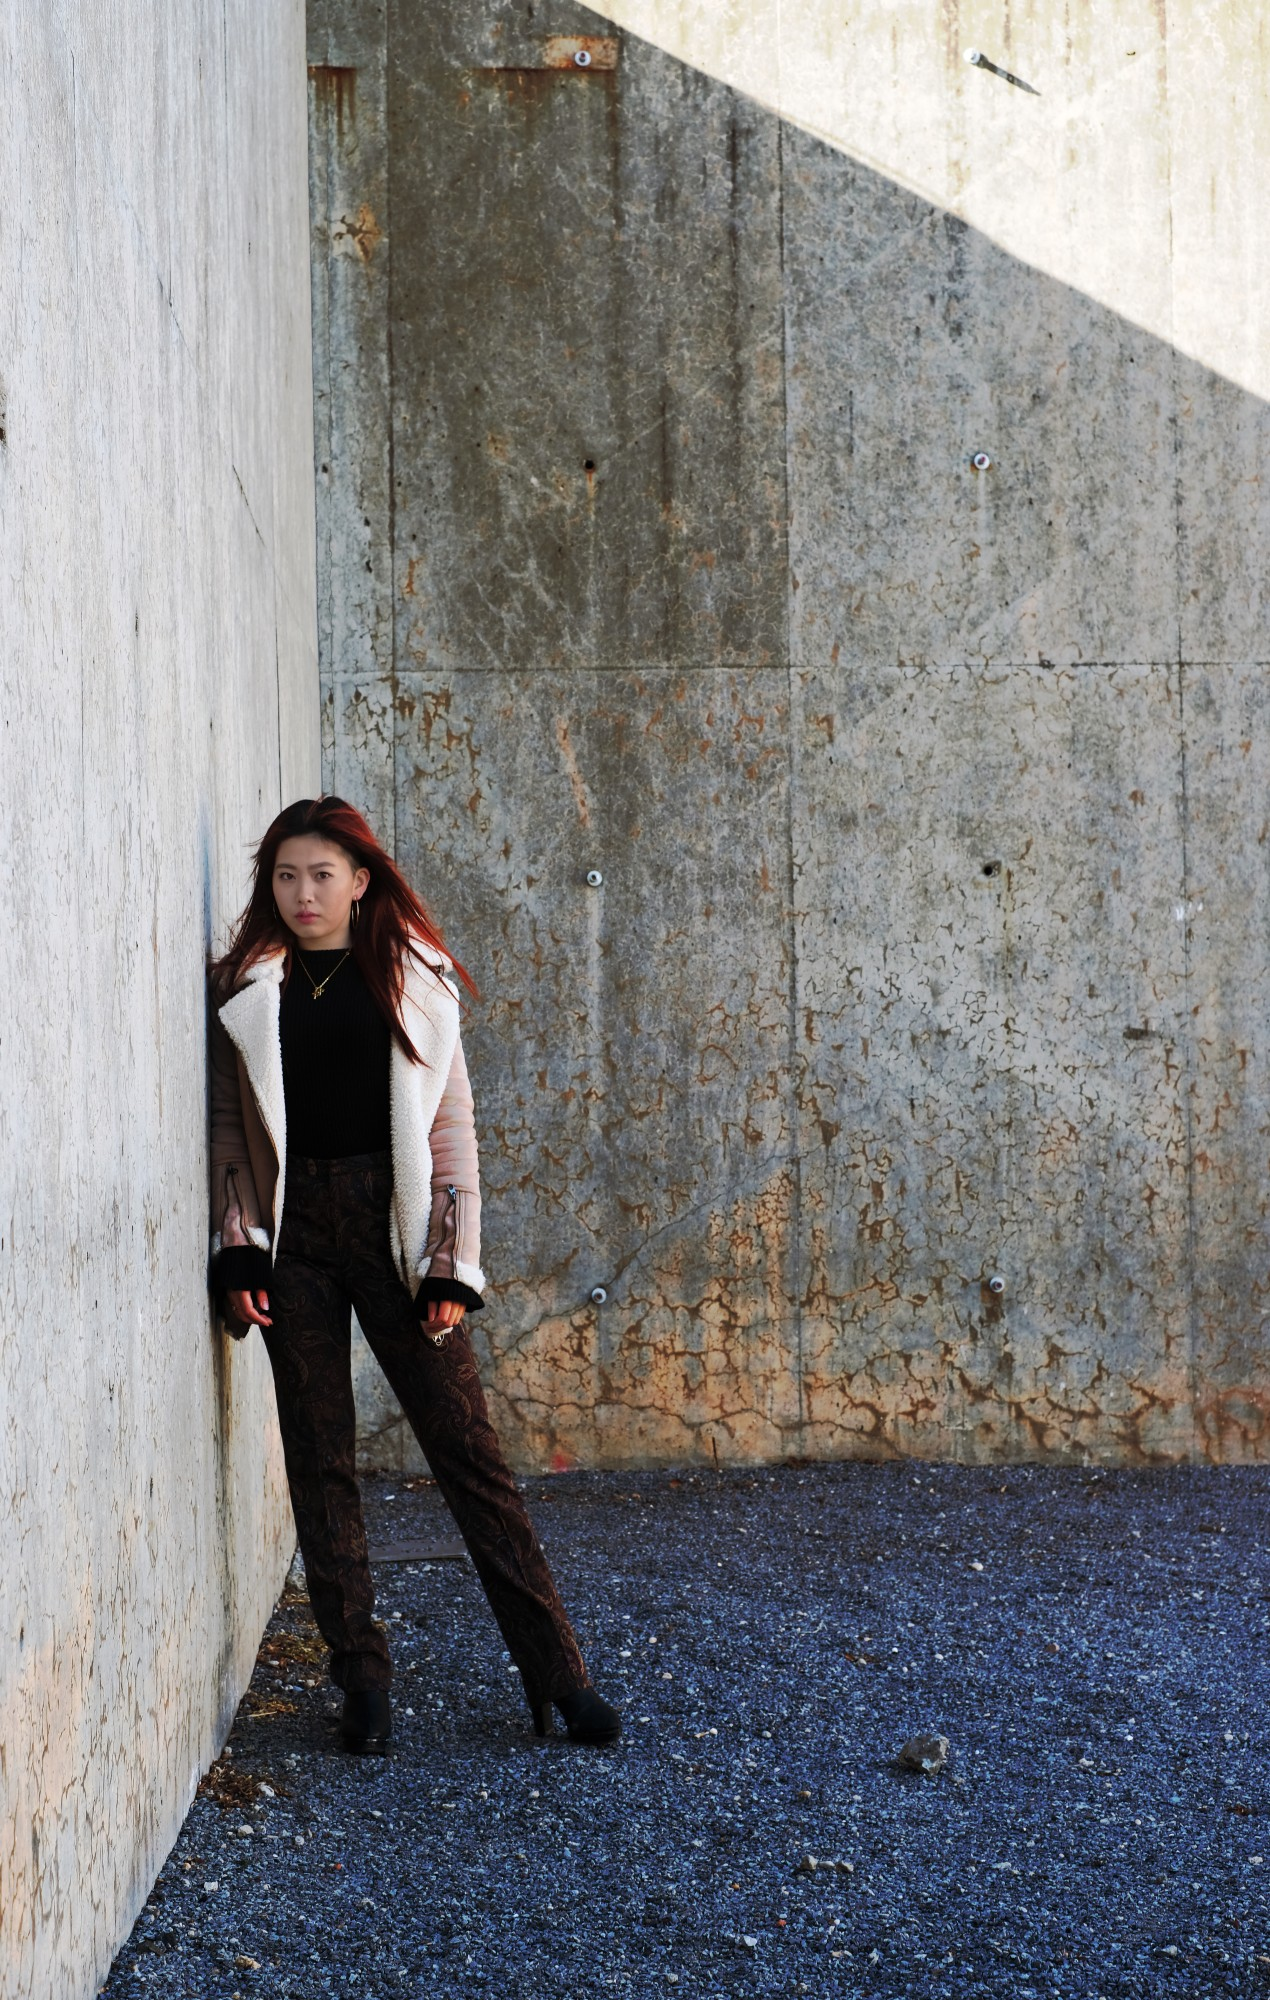 Japanese girl by concrete walls